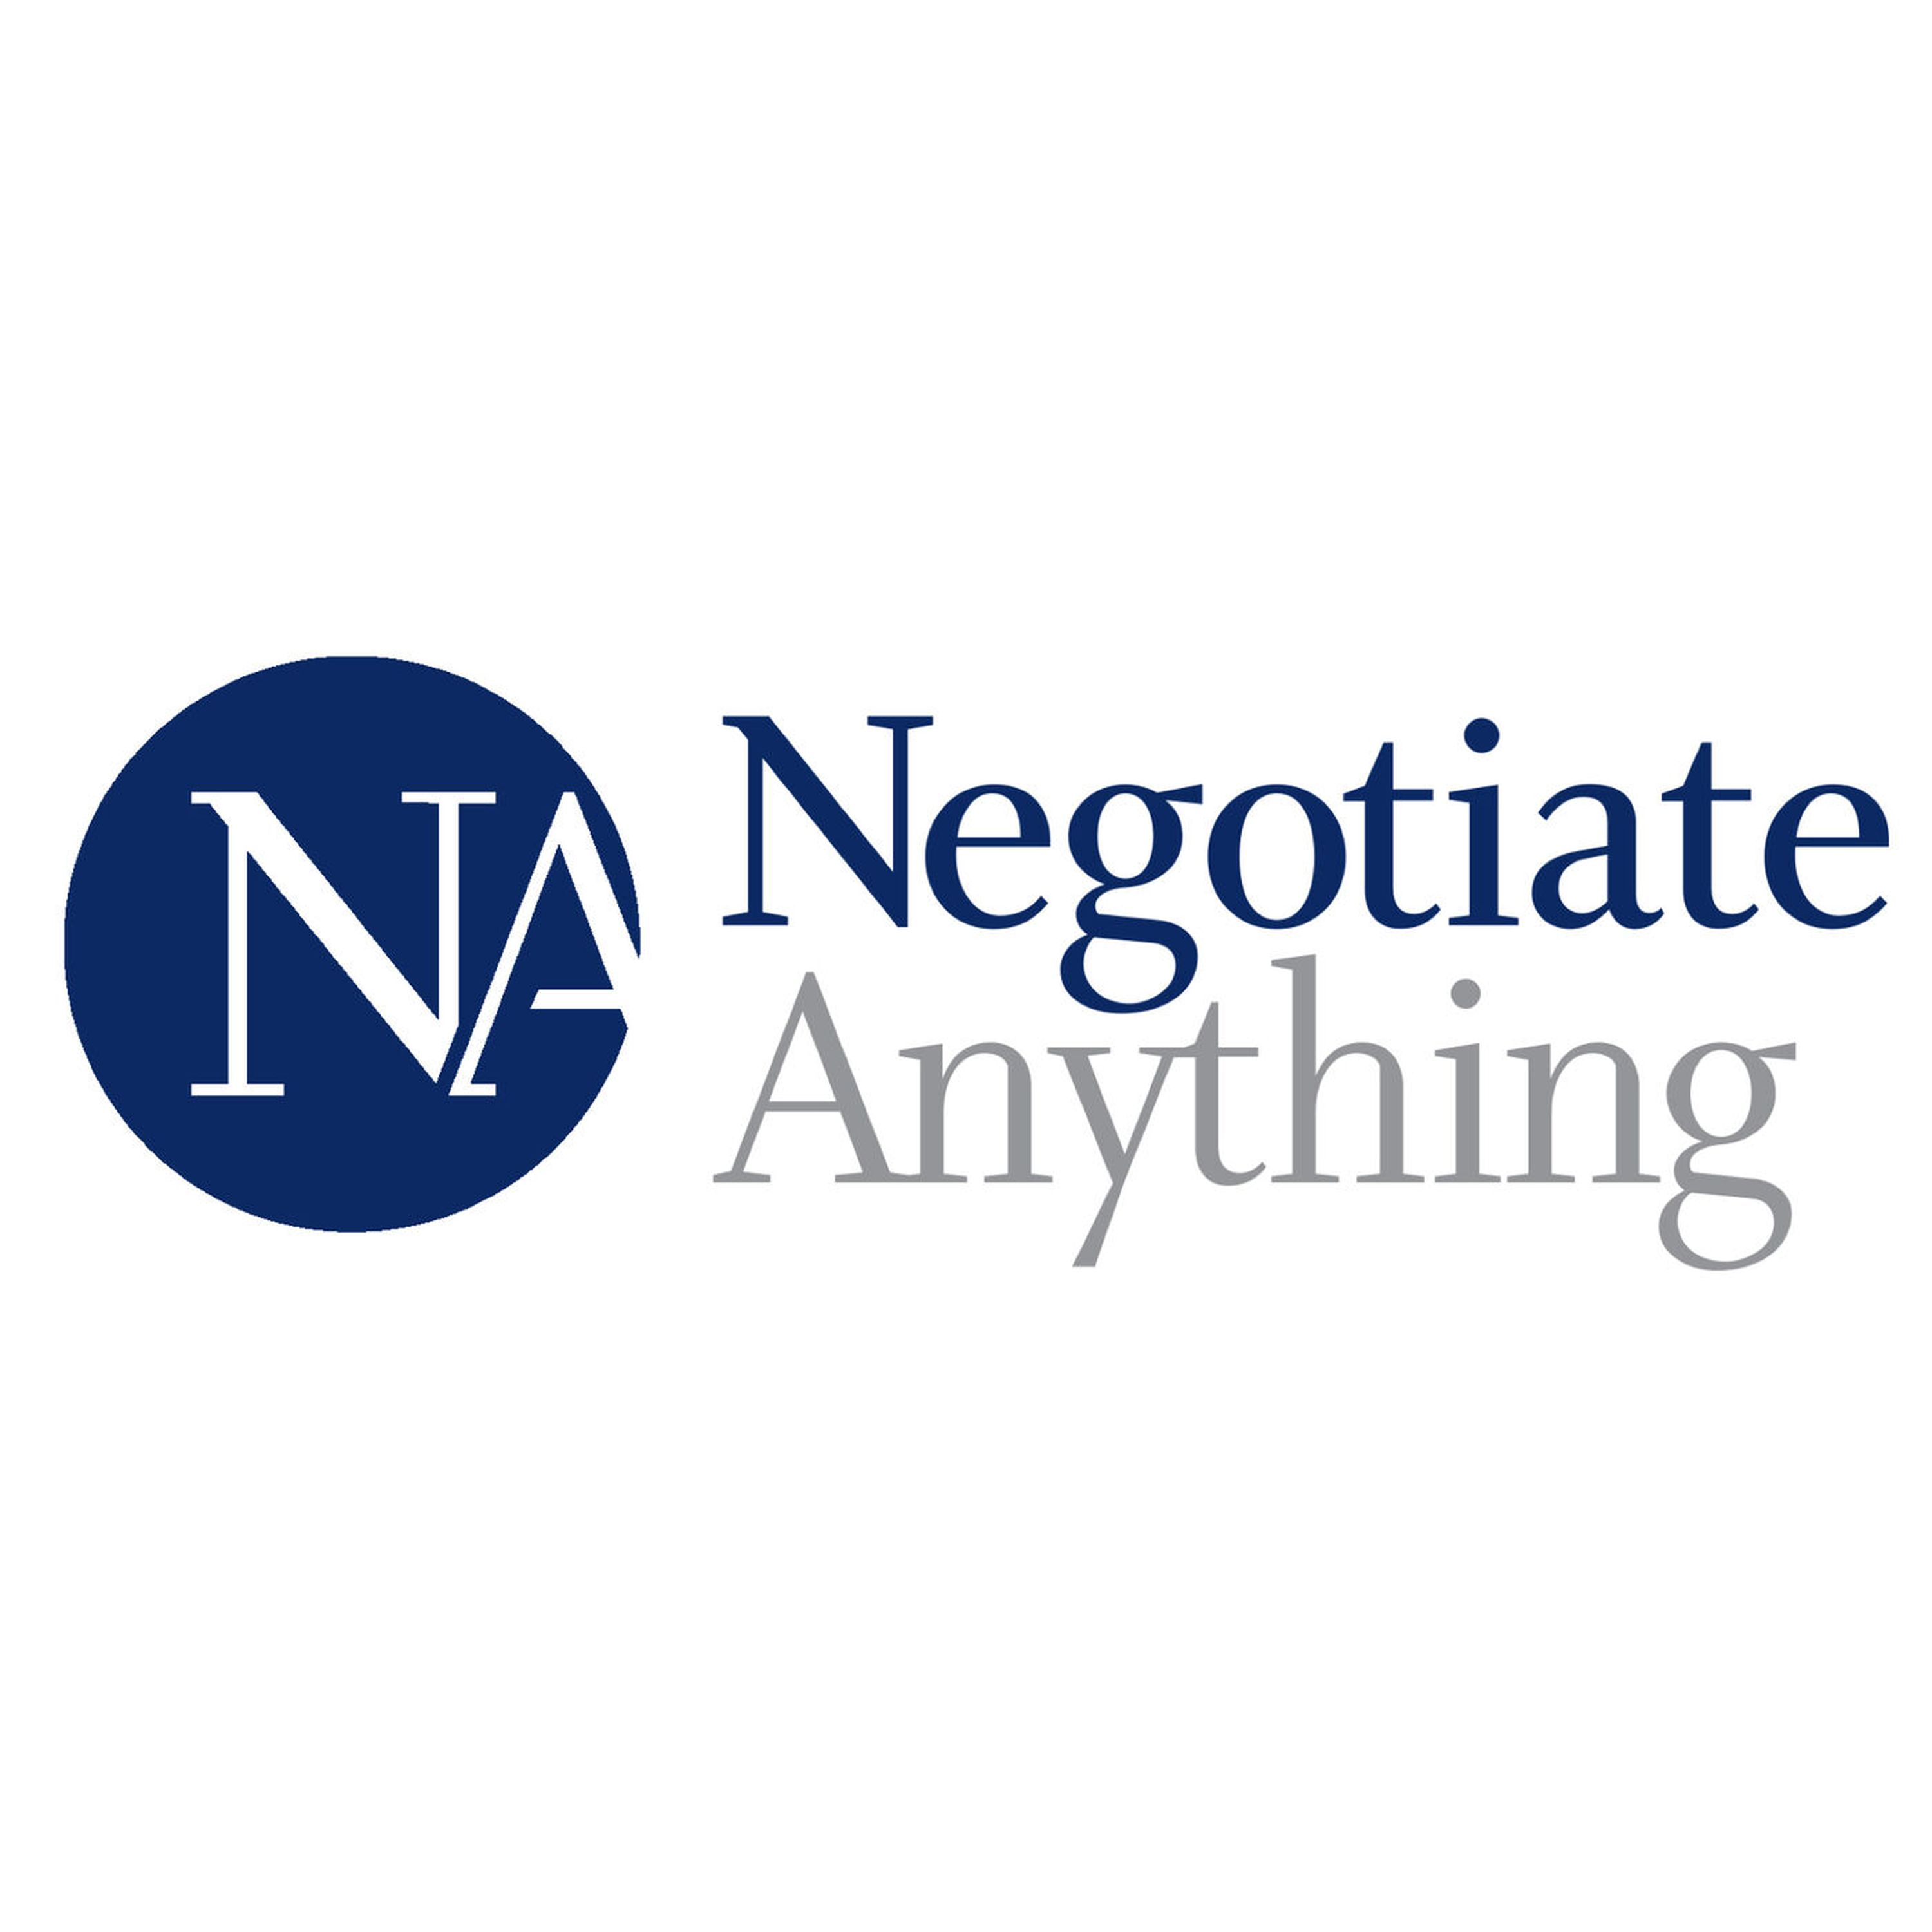 How to Win Digital Negotiations (Phone, Email, Video Conference)